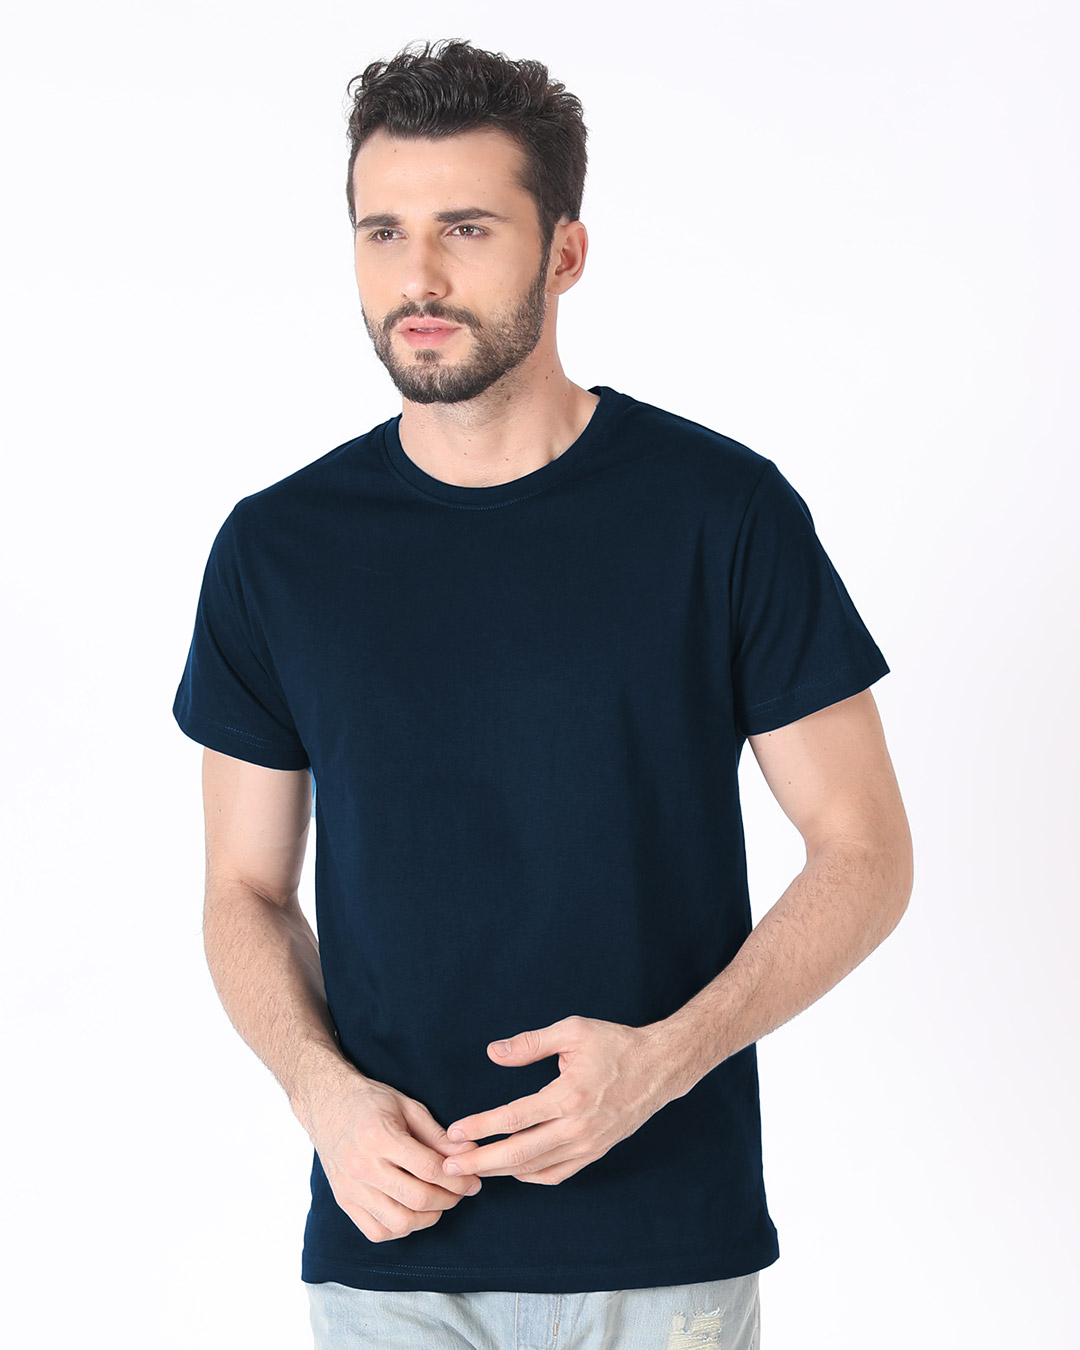 Blue Navy shirt men pictures new photo